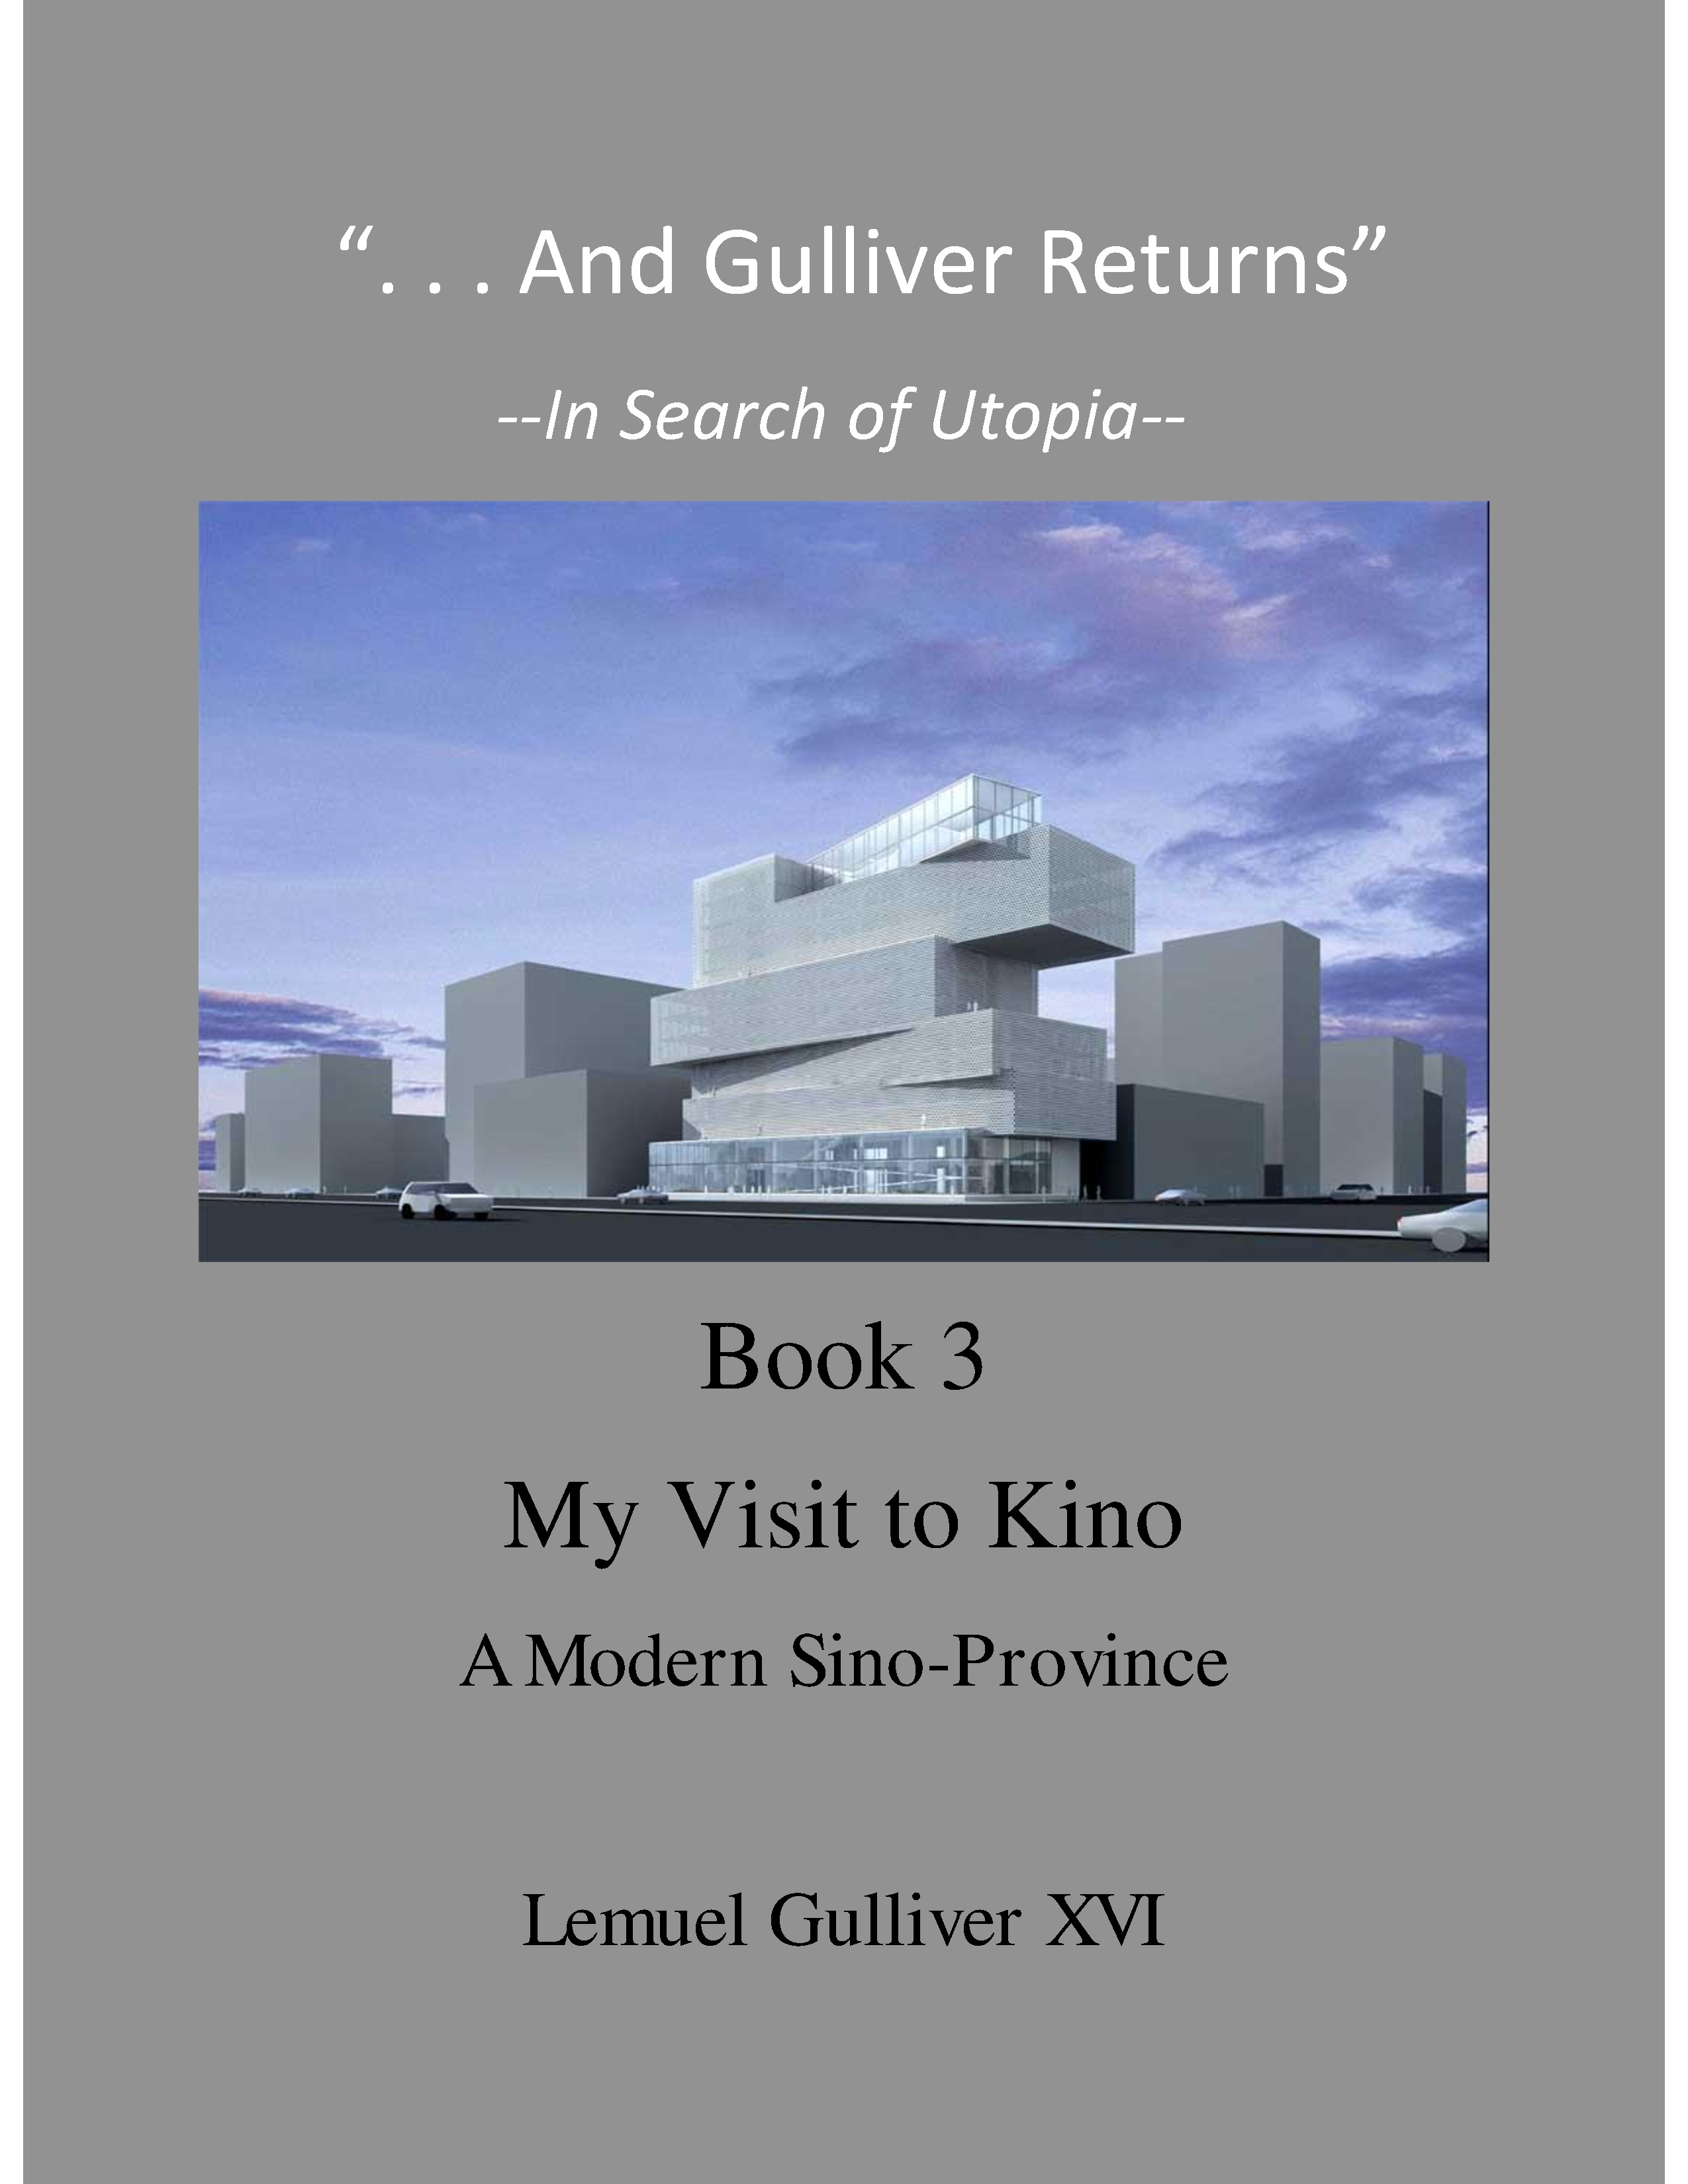 """And Gulliver Returns"" Book 3 A Visit to Kino"